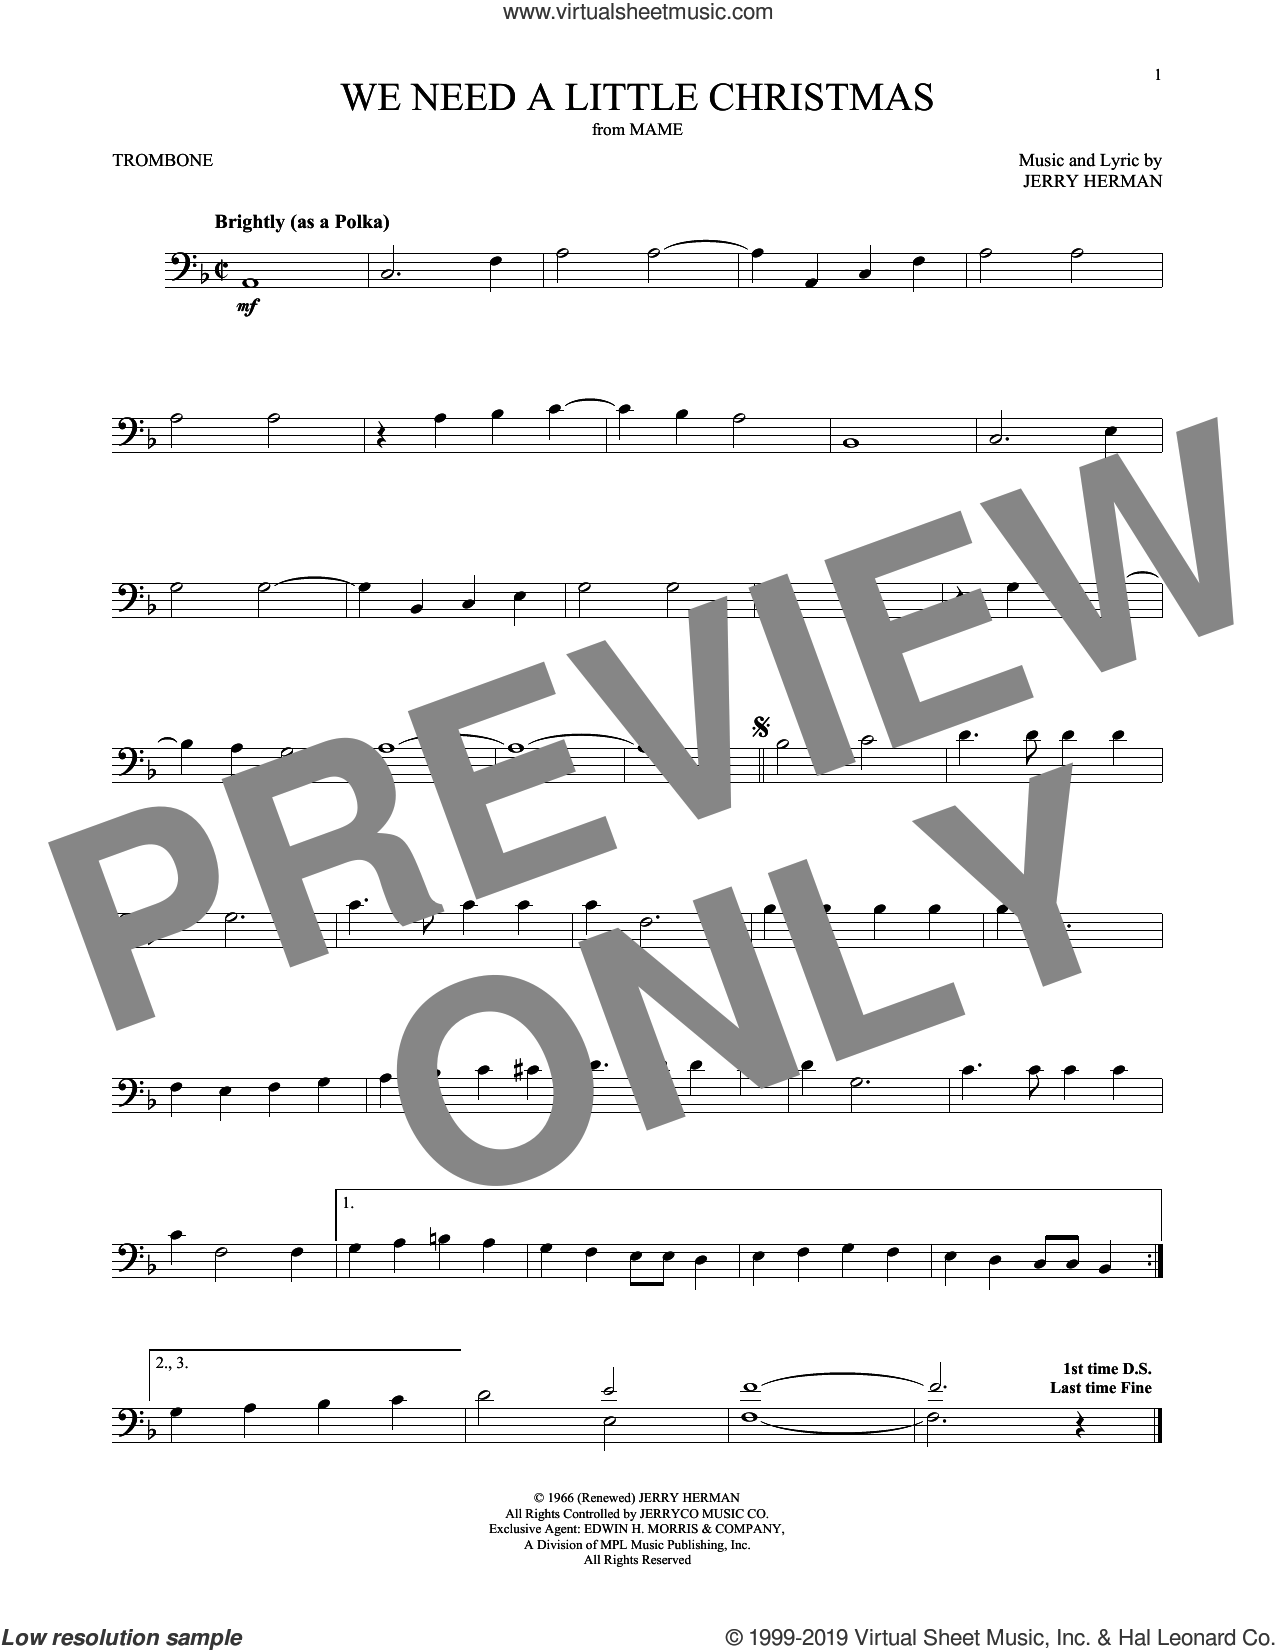 We Need A Little Christmas sheet music for trombone solo by Jerry Herman and Kimberley Locke, intermediate skill level